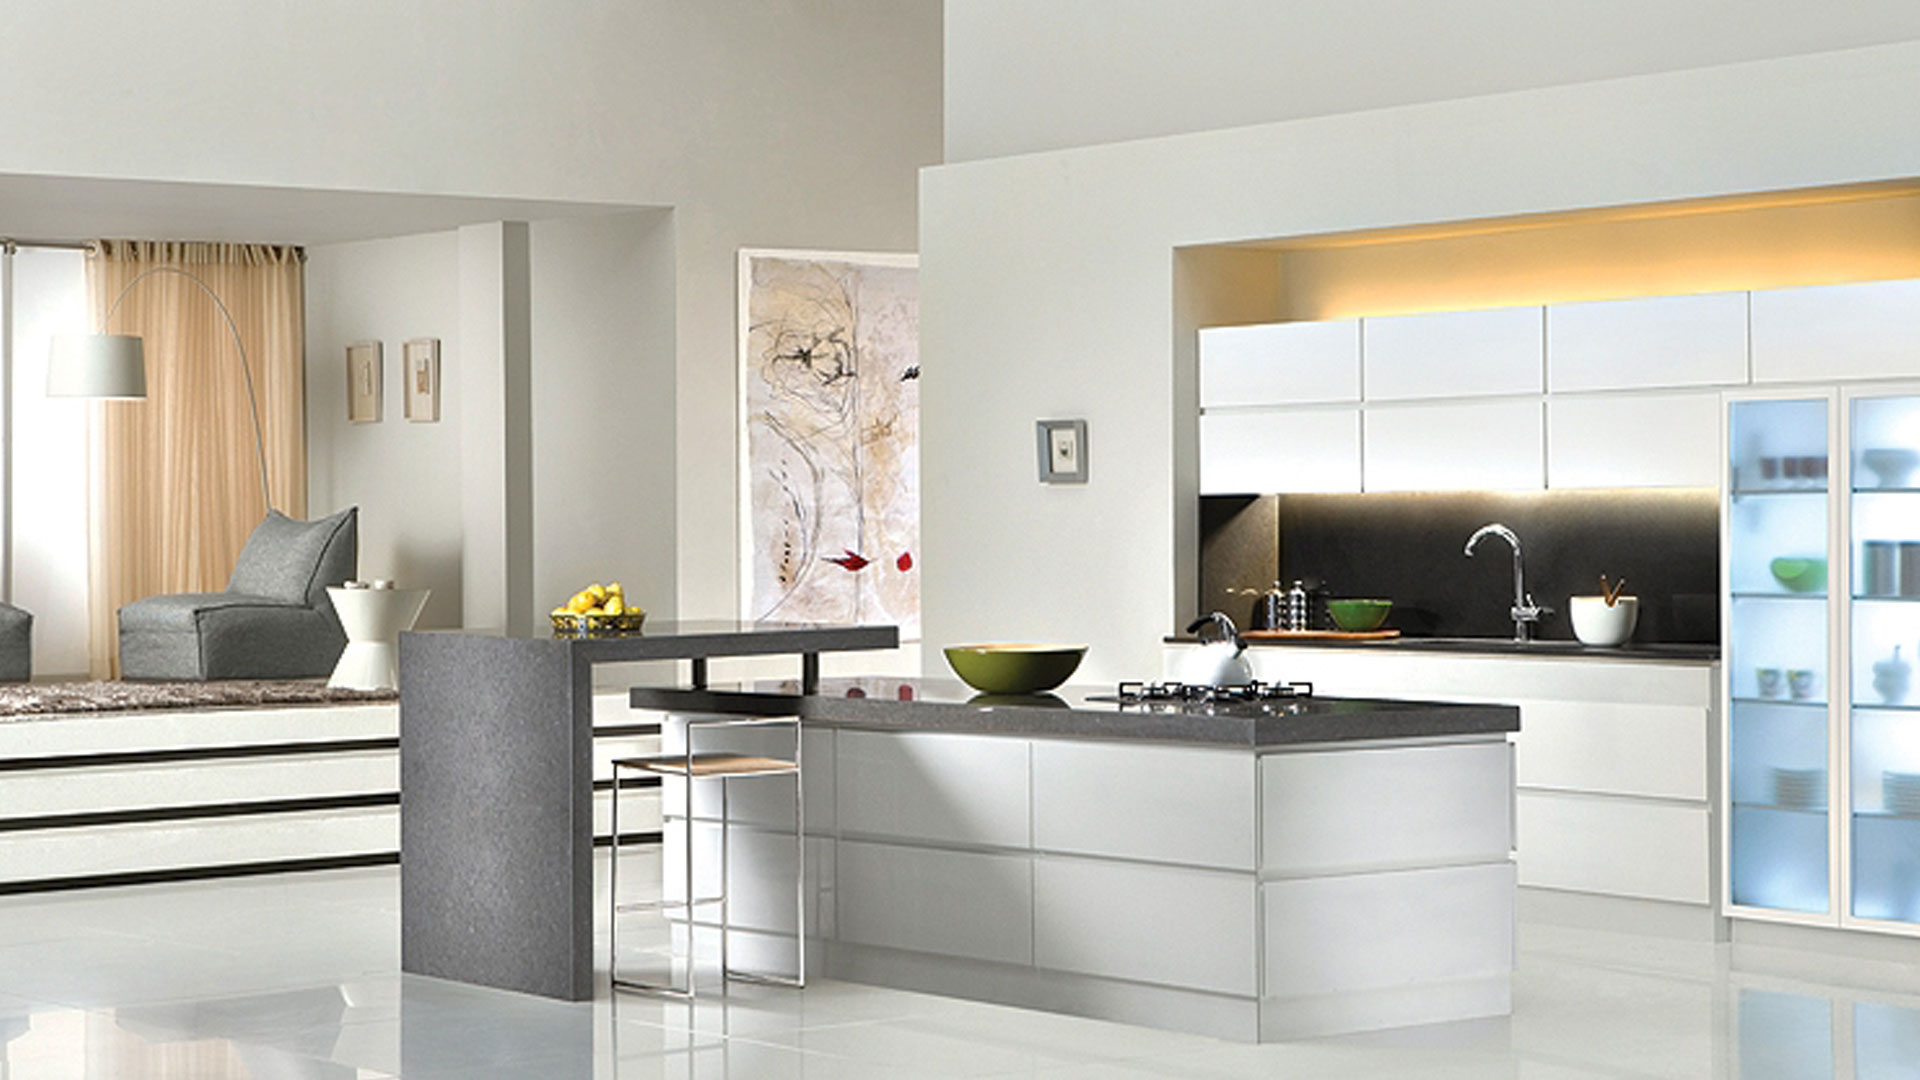 Remarkable Kitchen Interior Design Trends 2015 1920 x 1080 · 205 kB · jpeg